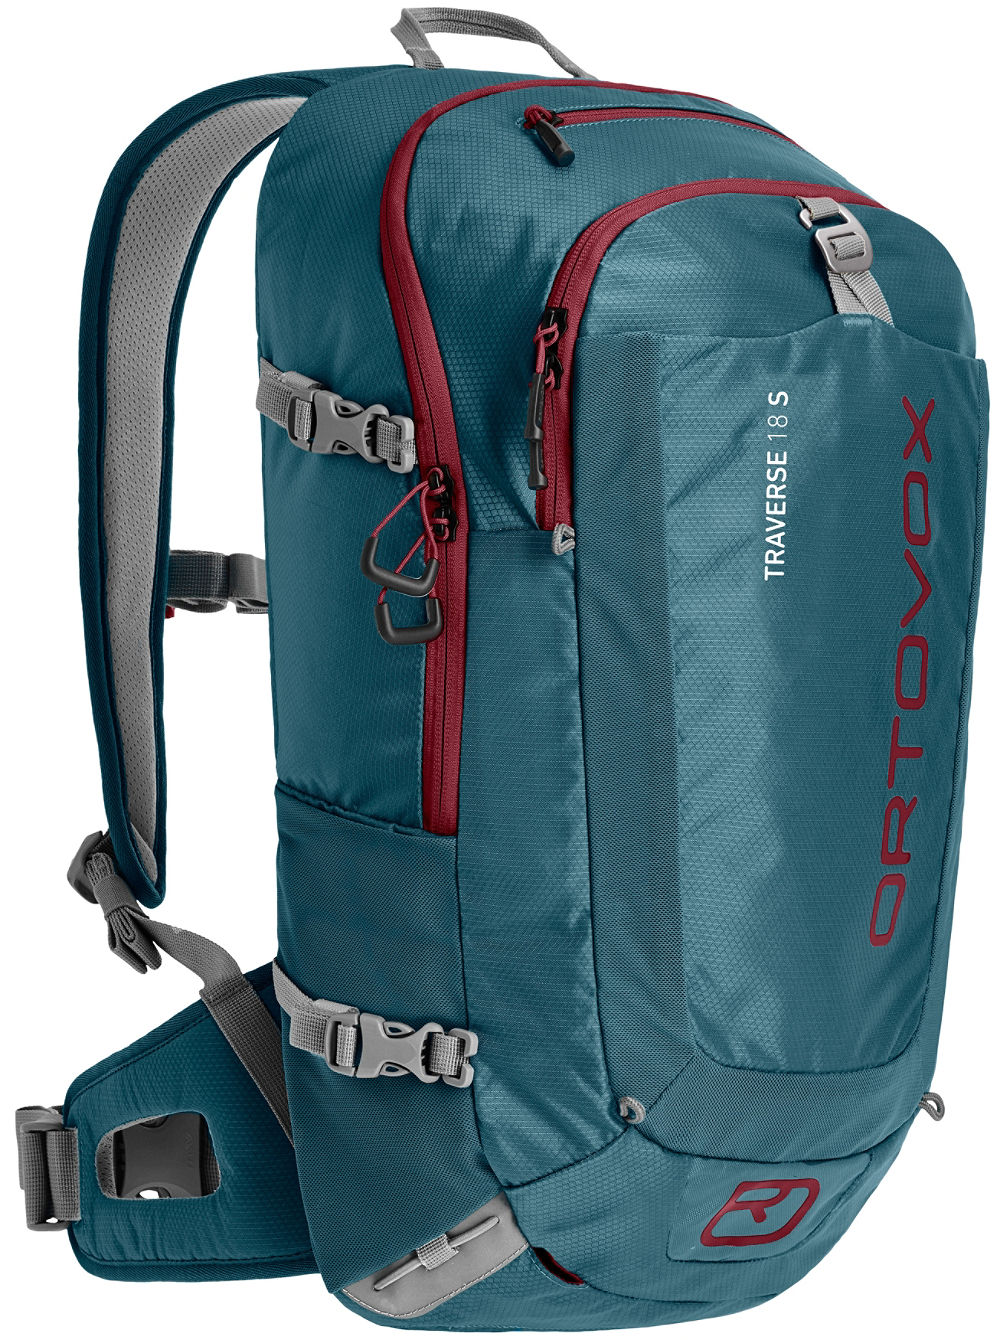 Traverse 18 S Backpack